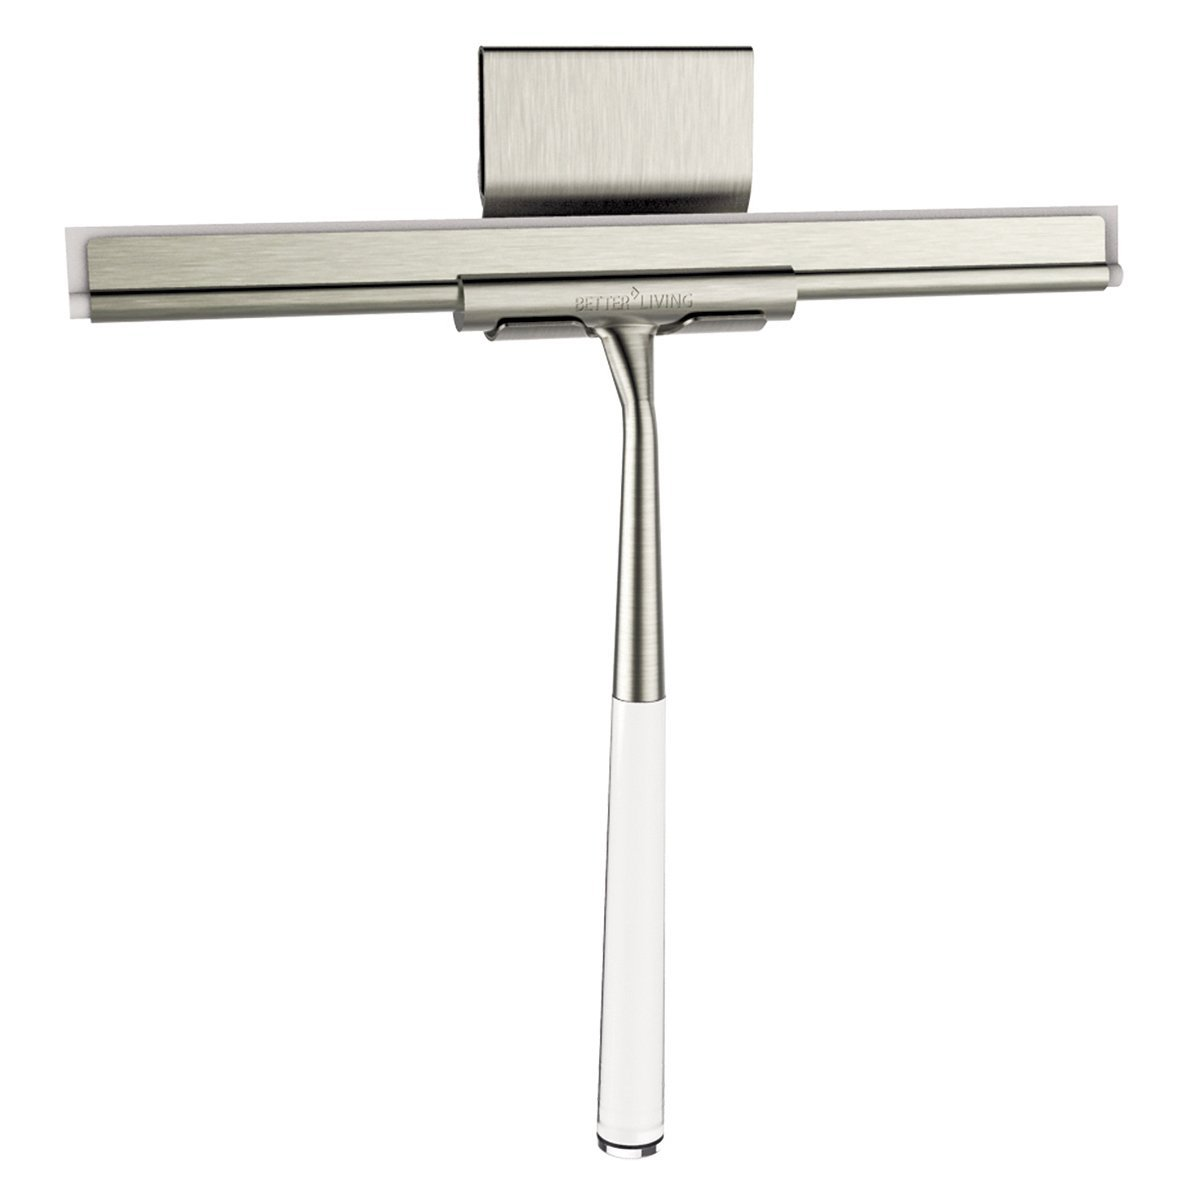 Cheap Squeegee Shower Find Squeegee Shower Deals On Line At Alibaba